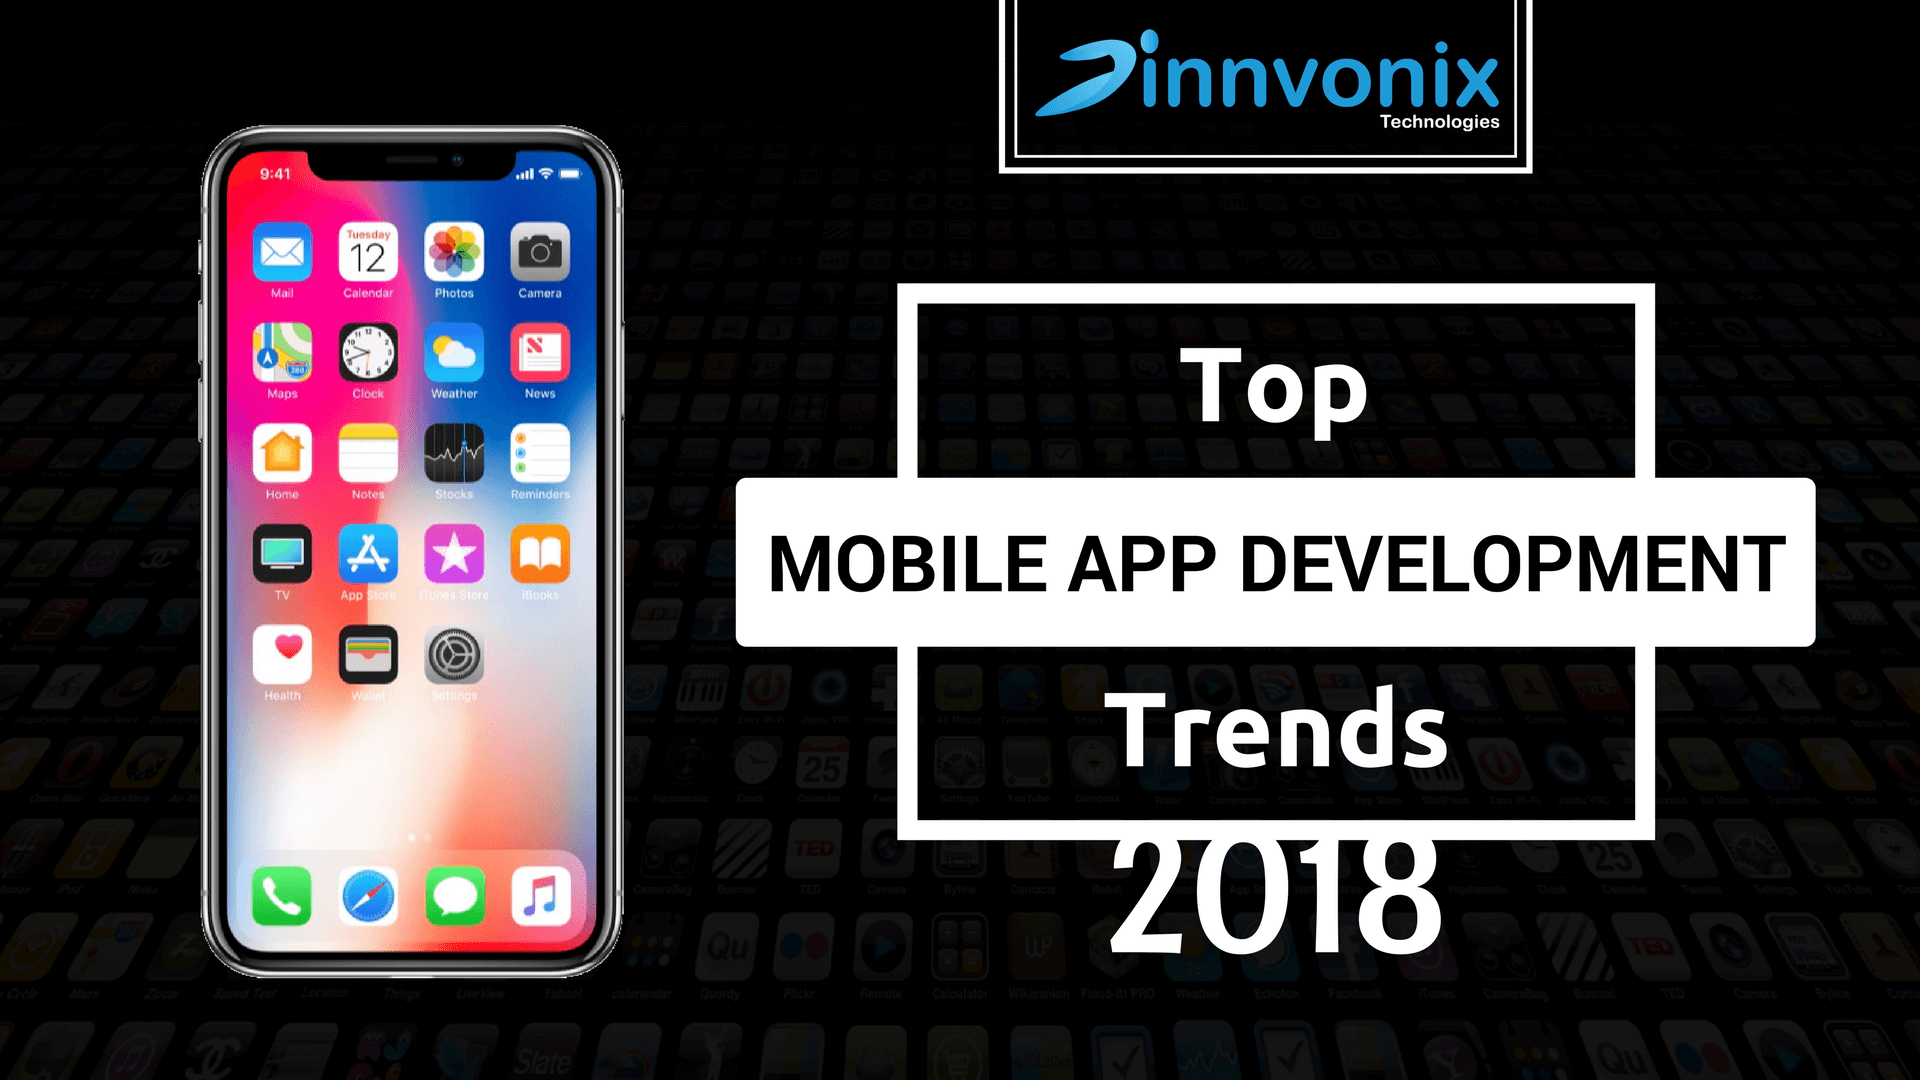 Top Mobile App Development Trends 2018